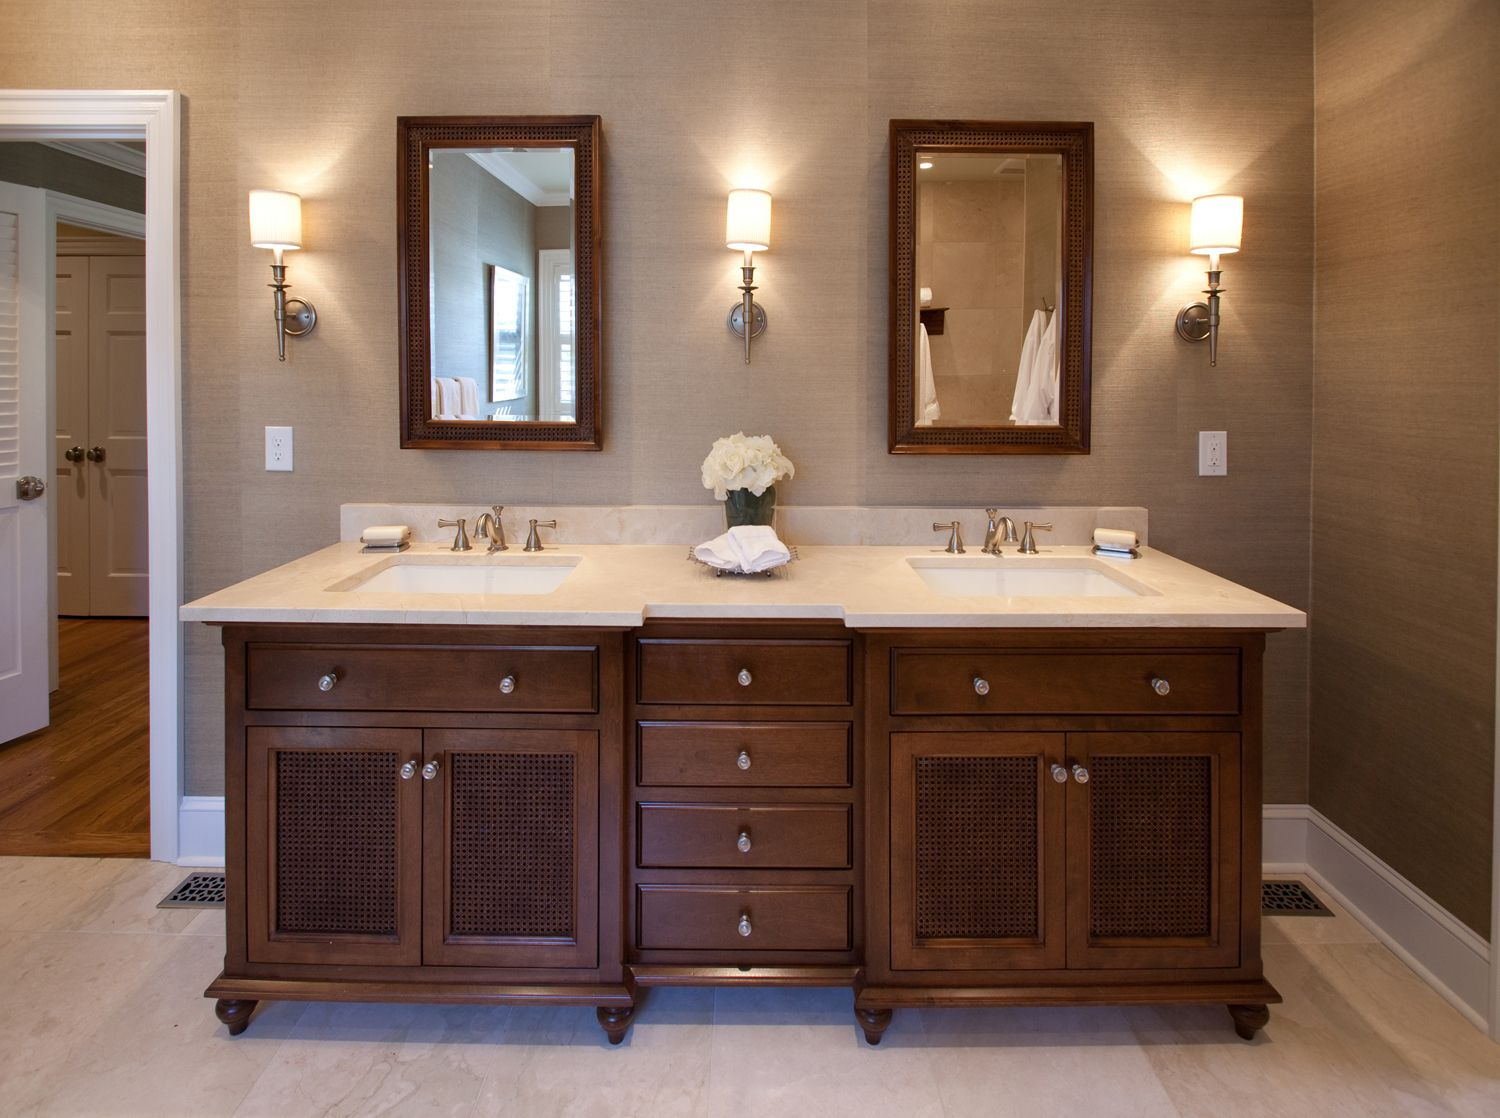 british colonial master bathroom, double vanity, grasscloth